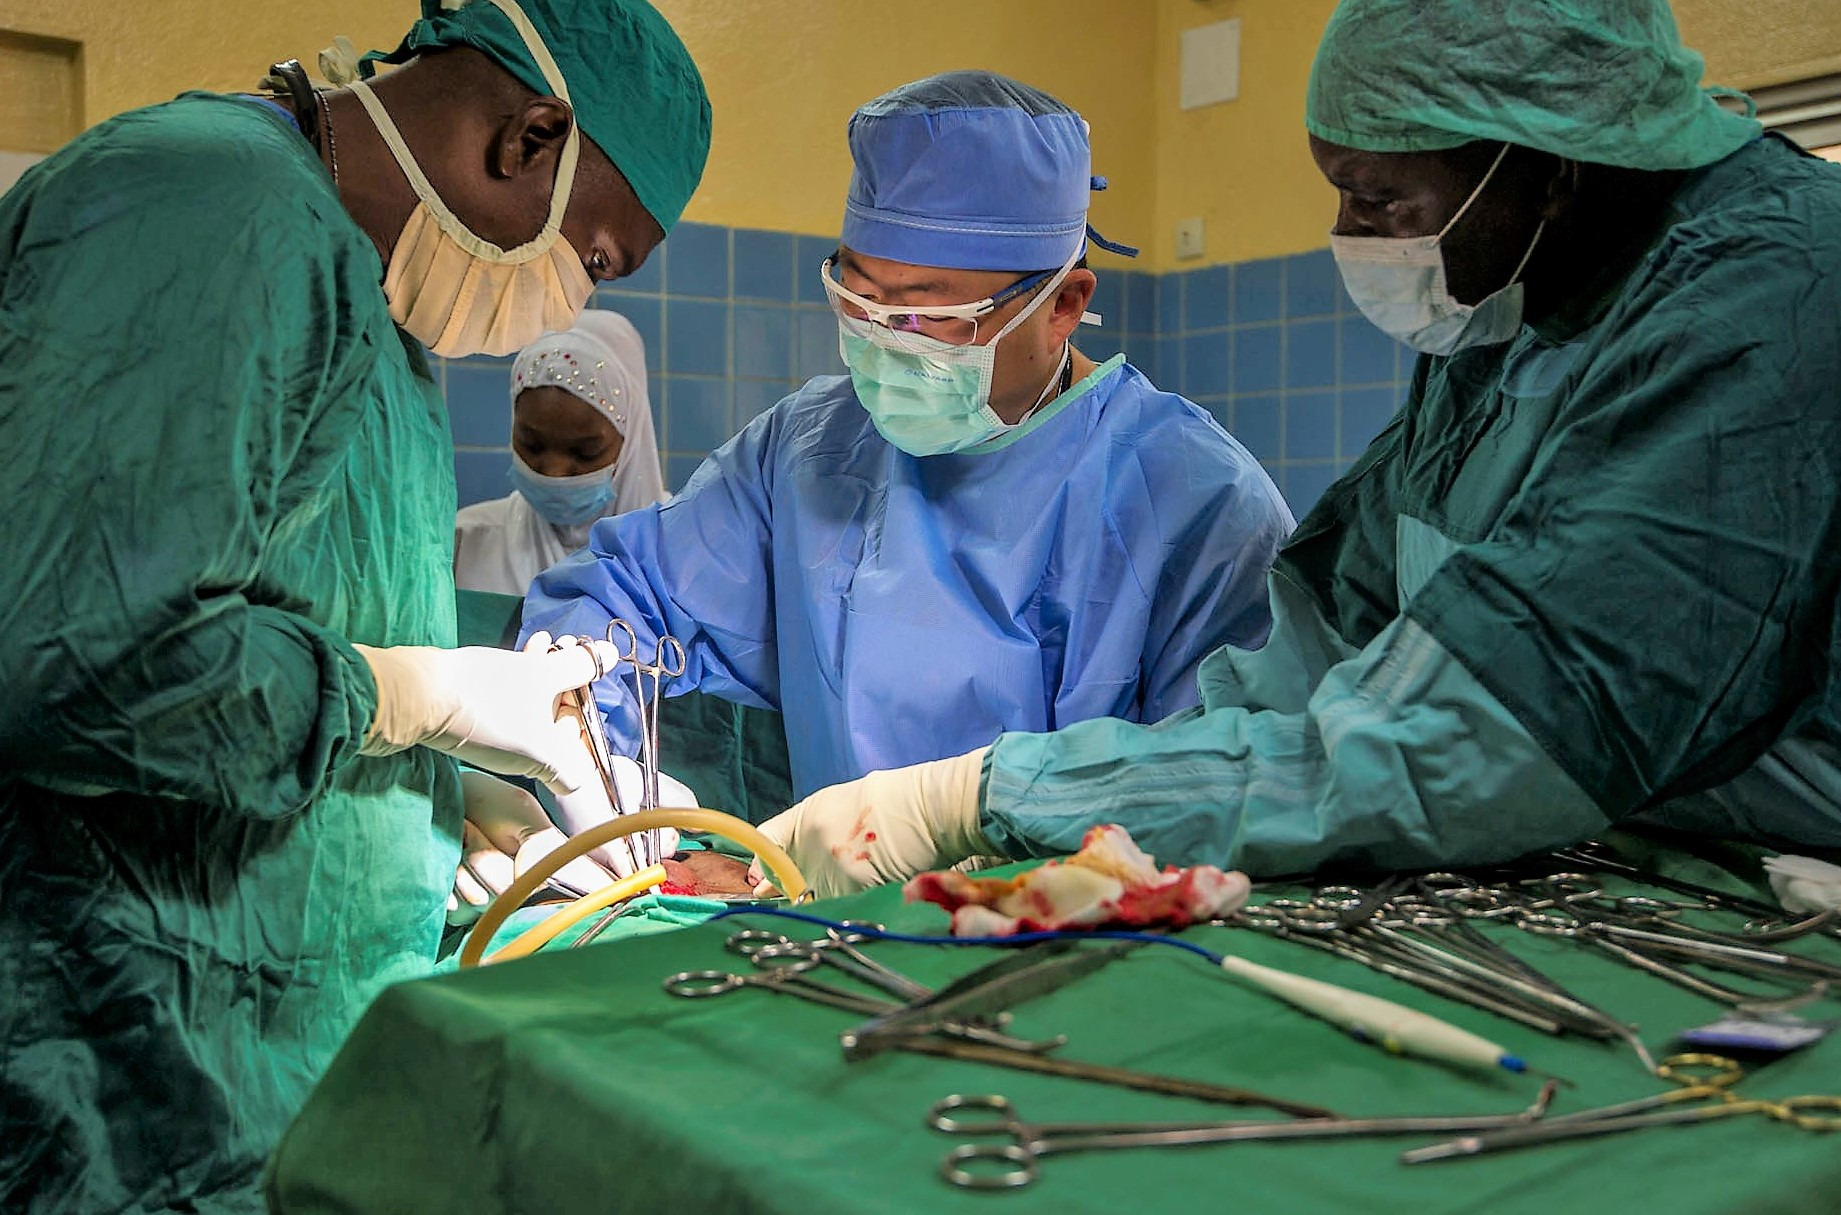 Cameroonian Lt. Col. Sebastien Mvogo, left, a general surgeon, and U.S. Army Maj. Joseph Lee, center, a general surgeon assigned to 212th Combat Support Hospital,perform an  appendectomy at the Regional Hospital of Garoua during Medical Readiness Training Exercise 17-5 in Garoua, Cameroon, Aug. 8, 2017. The mutually beneficial exercise, being conducted for the first time in the region, offers opportunities for the partnered militaries to share best practices and improve medical treatment processes. (U.S. Army Africa photo by Staff Sgt. Shejal Pulivarti)